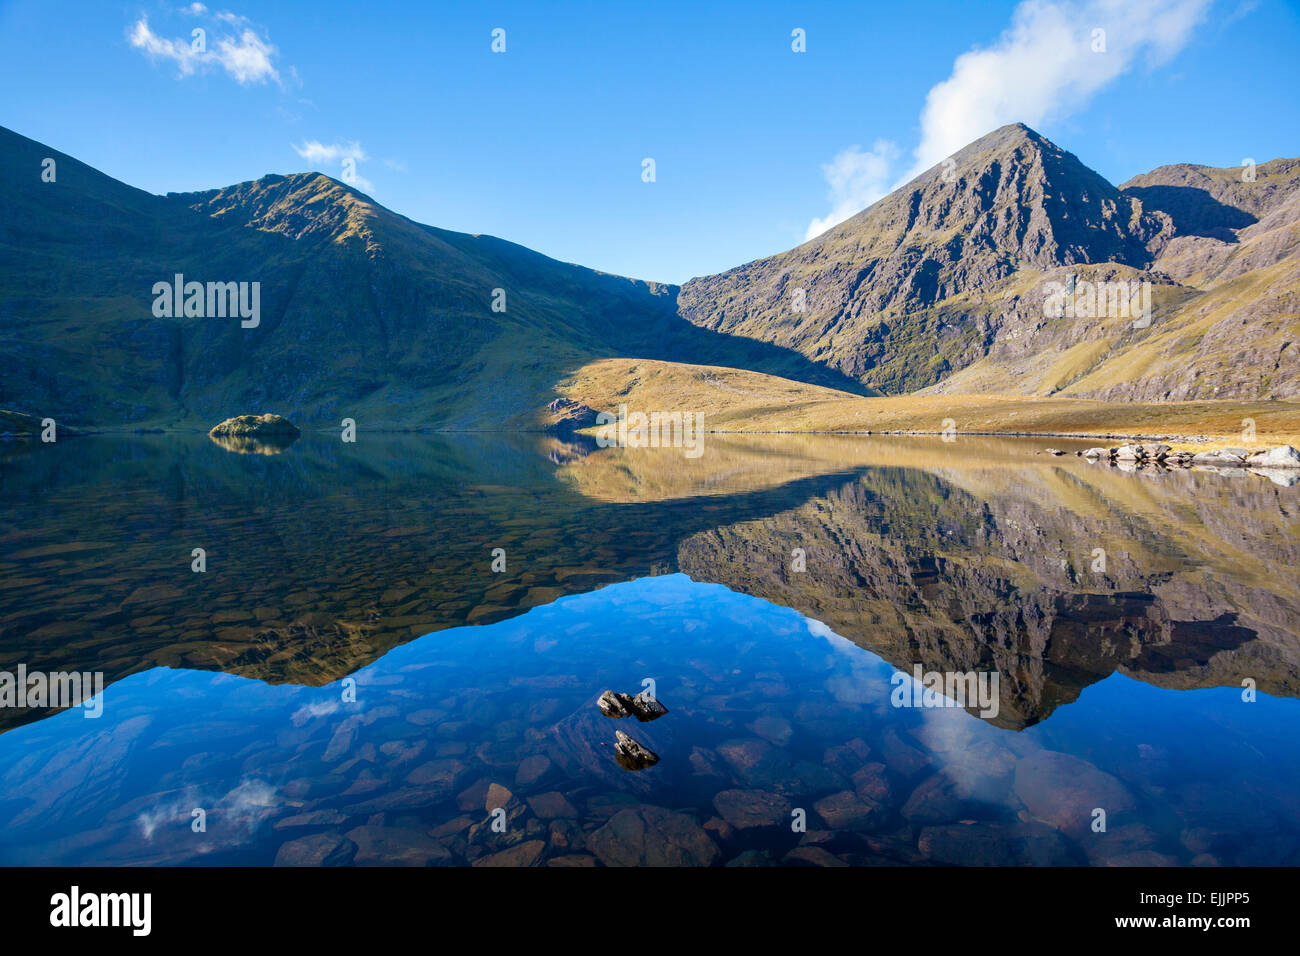 Carrauntoohil reflected in Lough Callee, Hag's Glen, MacGillycuddy's Reeks, County Kerry, Ireland. - Stock Image